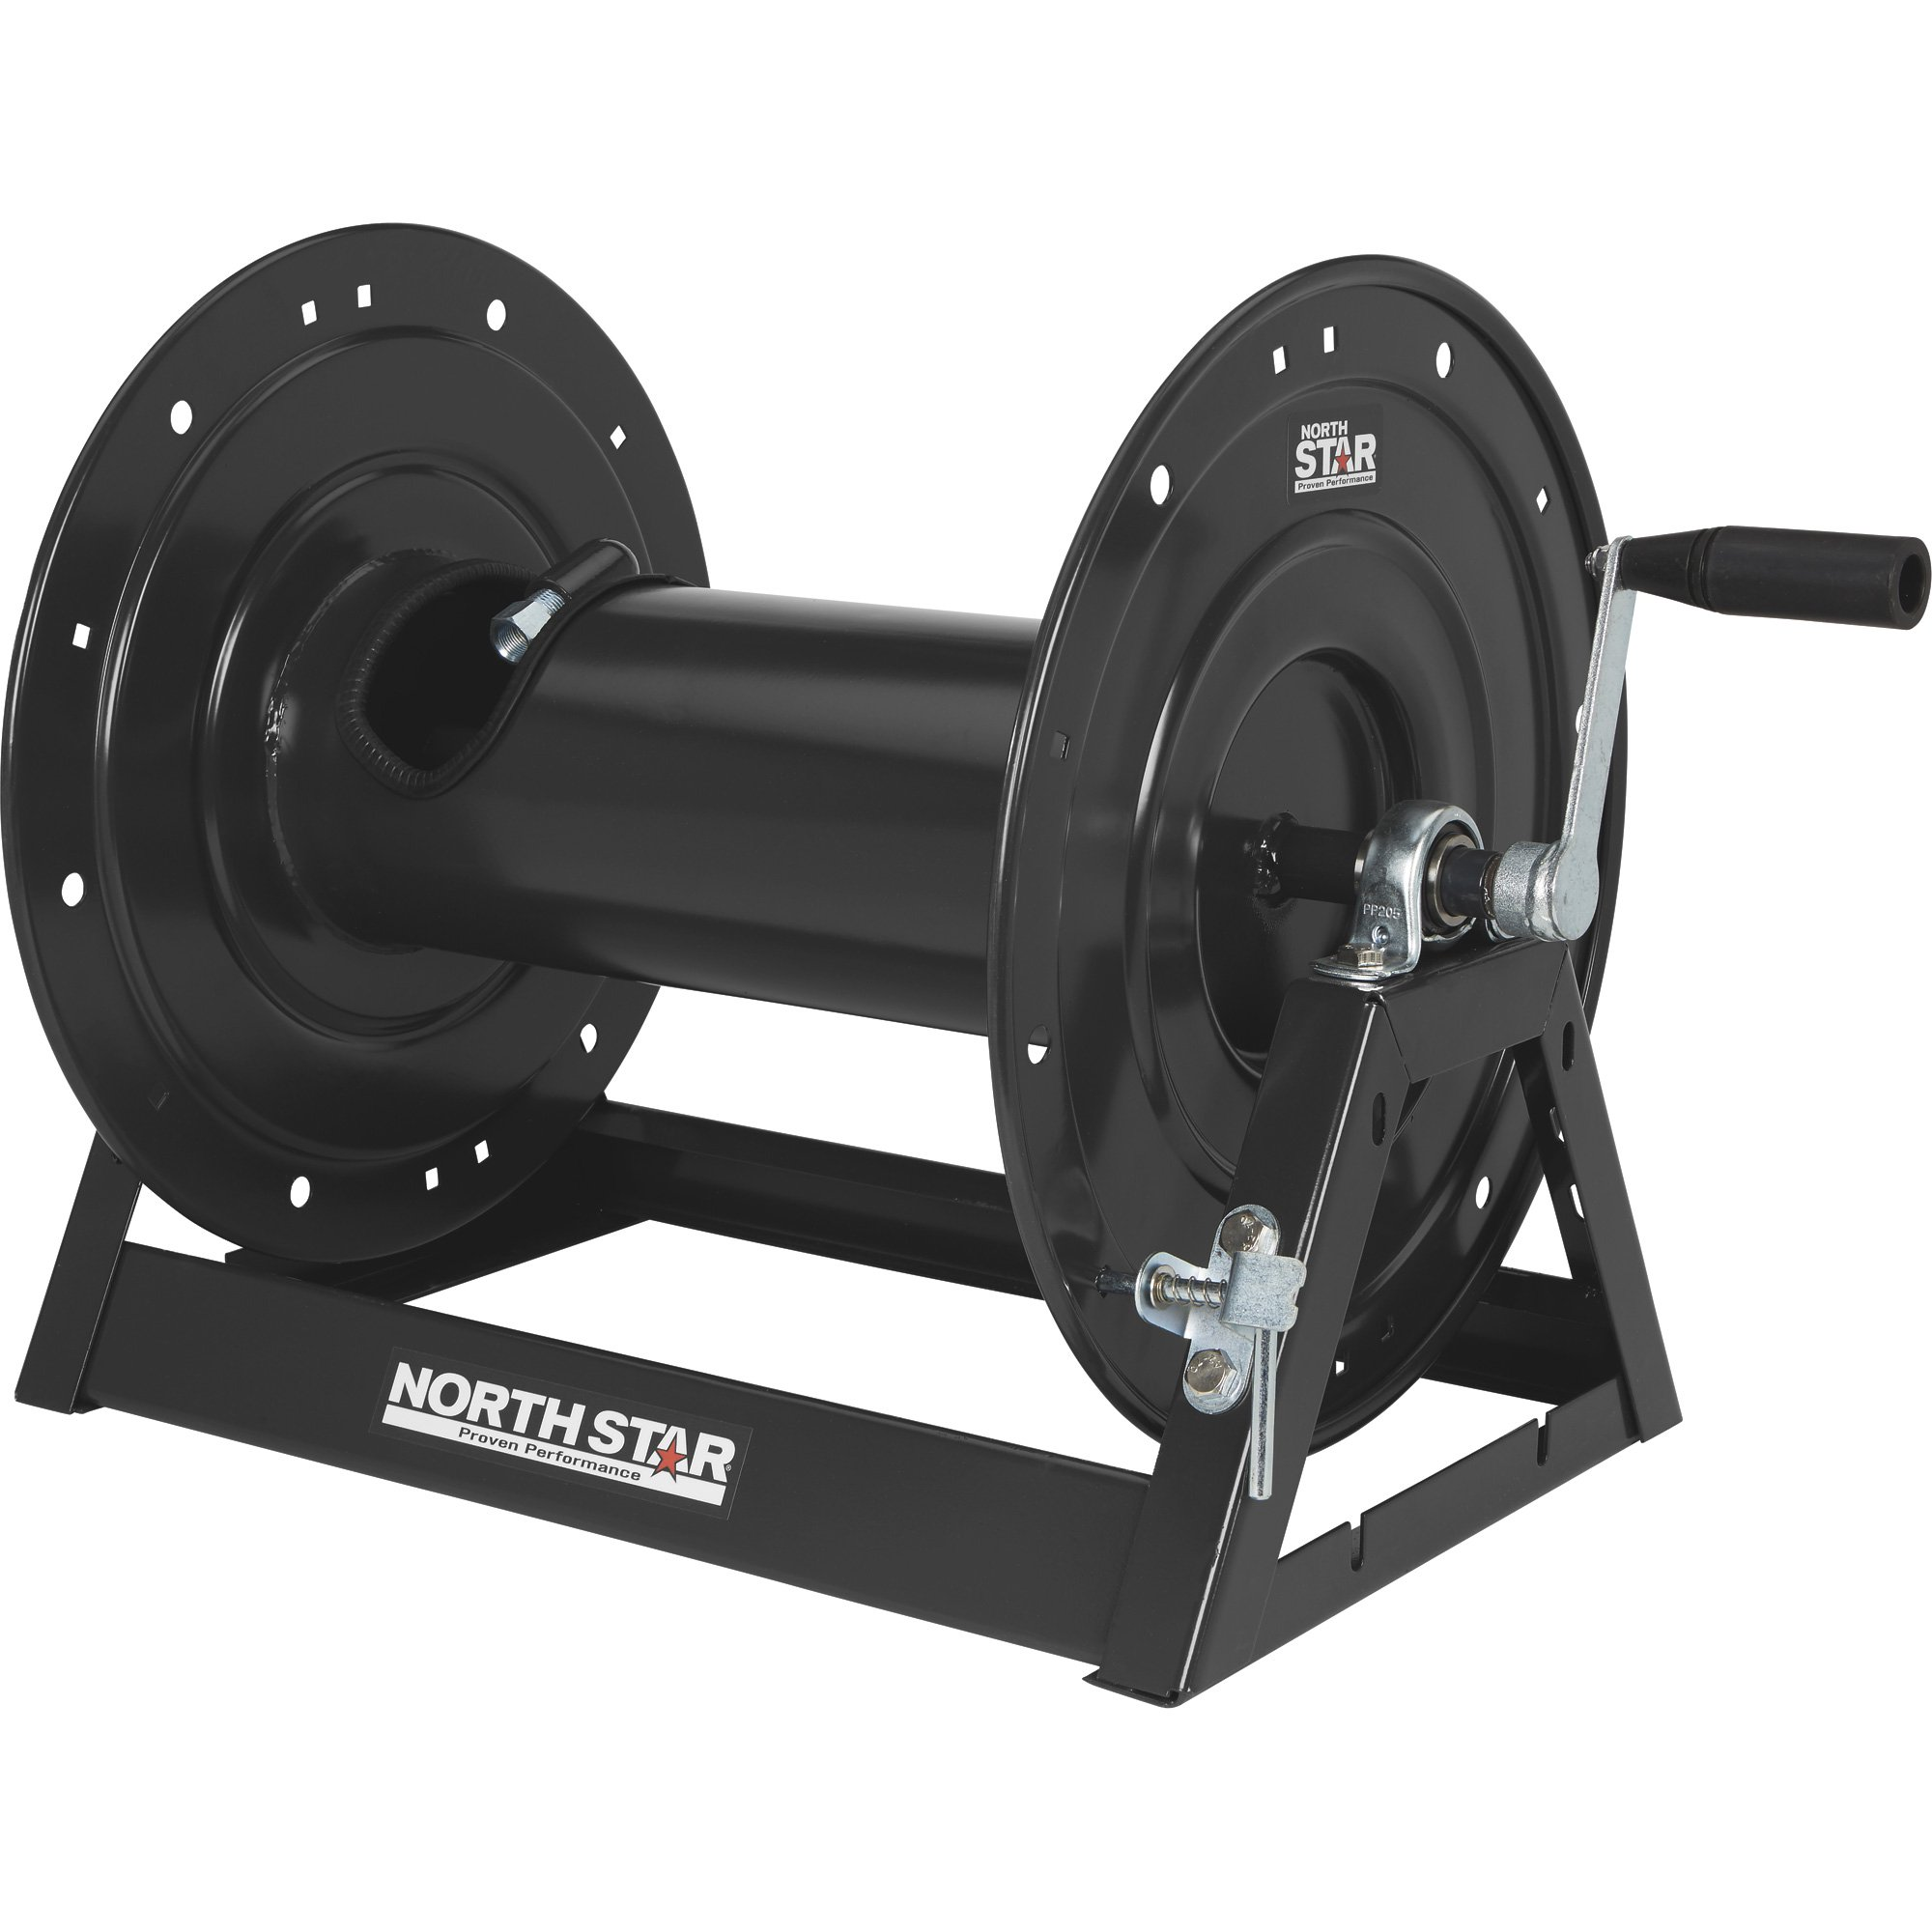 NorthStar 55793 Heavy-Duty A-Frame Hose Reel - 5000 PSI, 450ft. Capacity